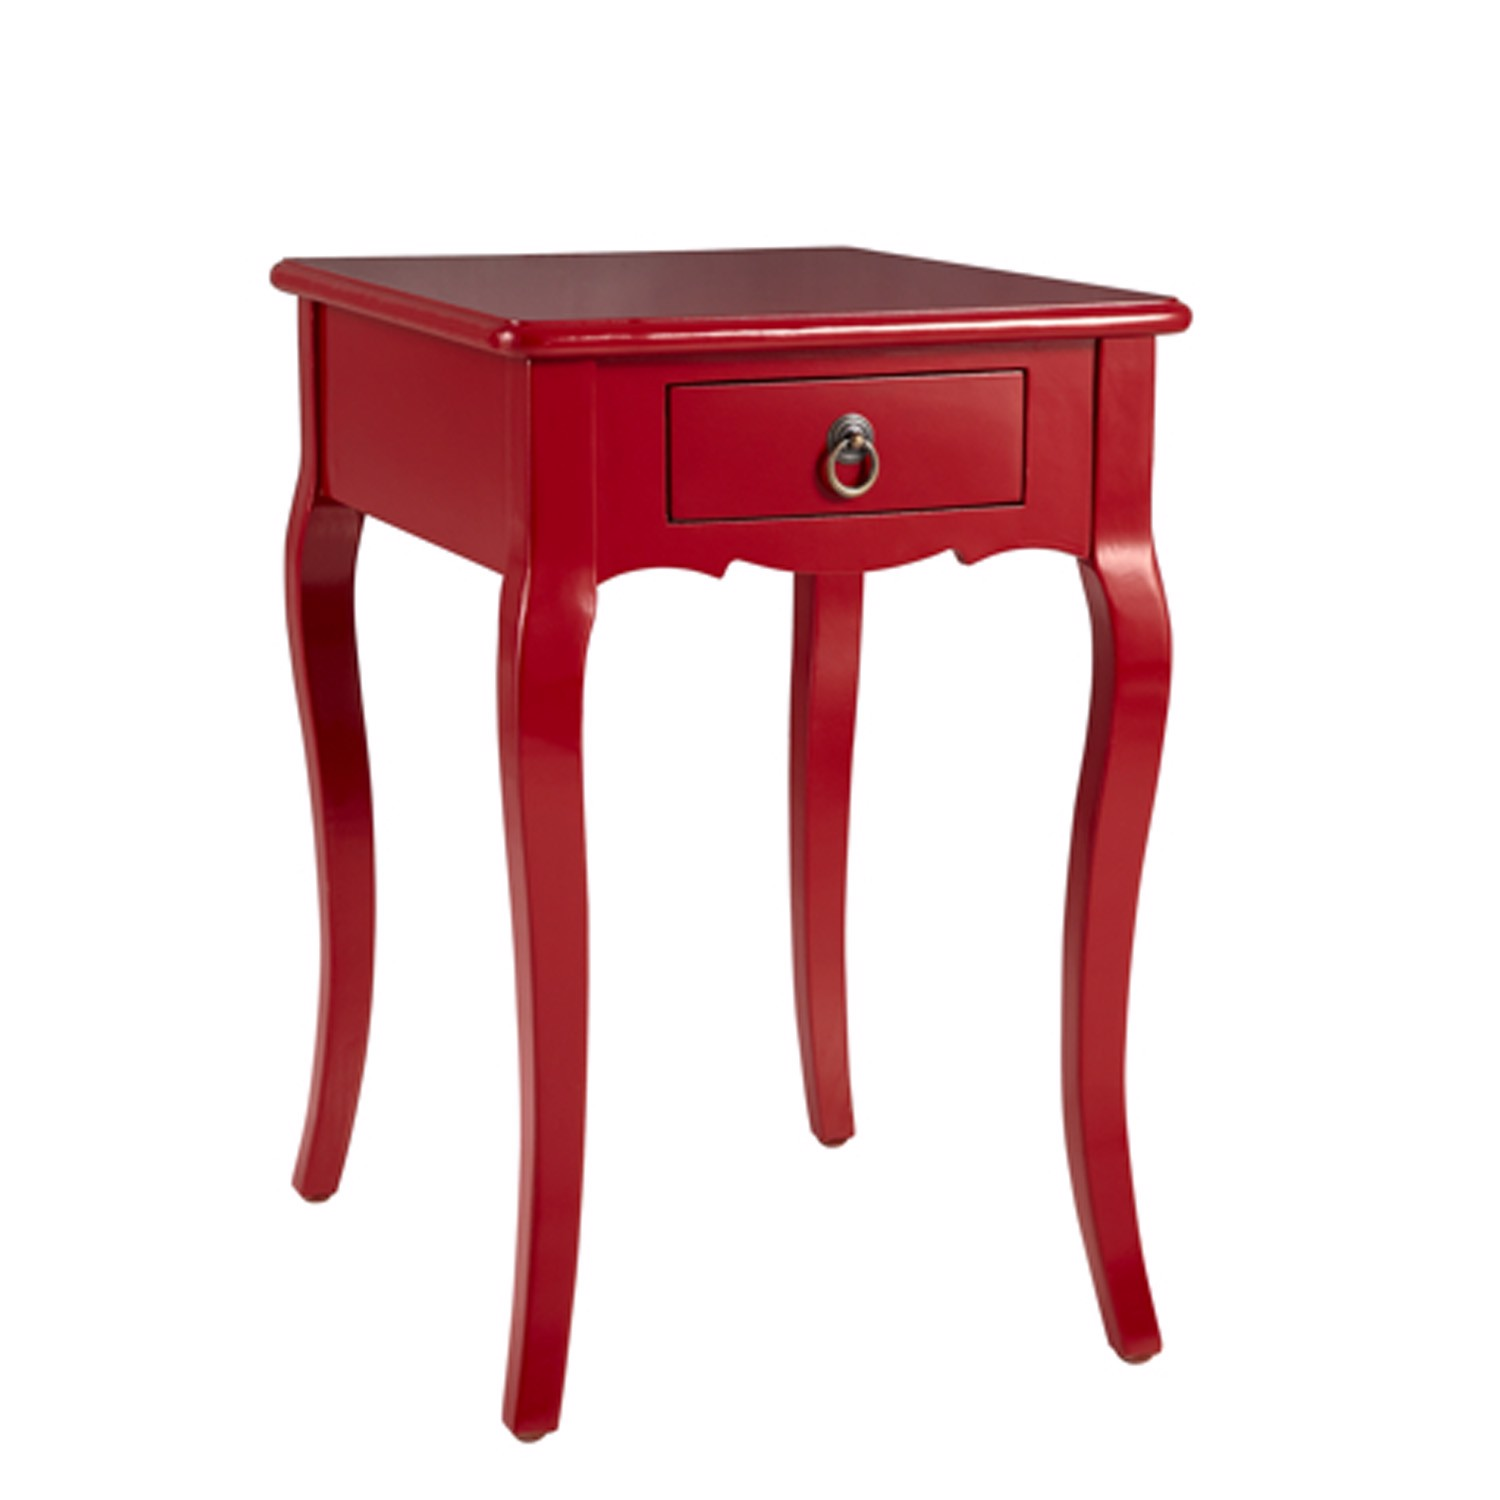 End table <br/>IDT3272